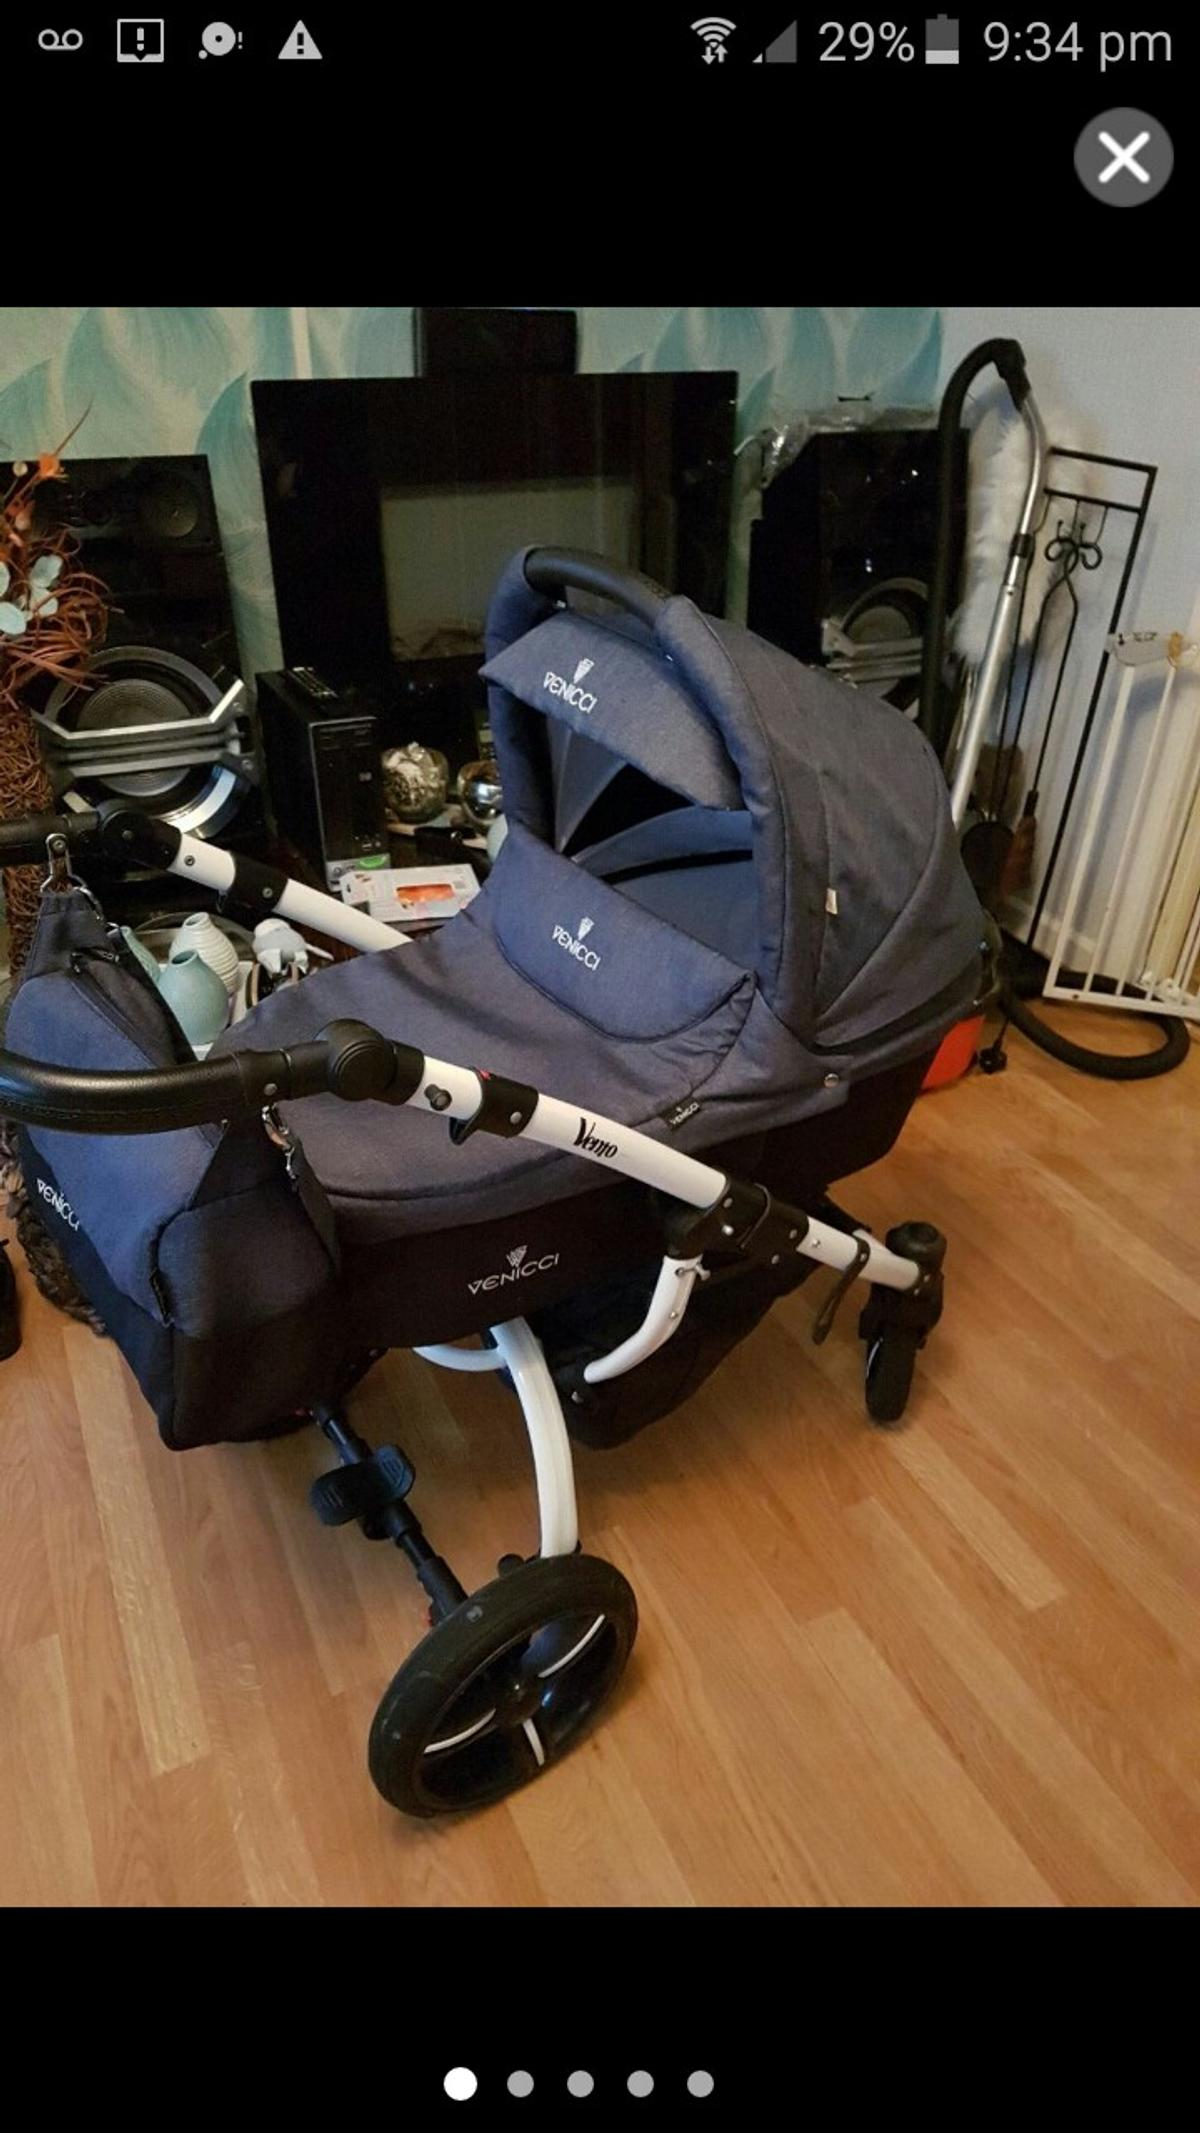 Toddler Stroller Umbrella 3 In One Vennici Pram In Ws10 Sandwell For 140 00 For Sale